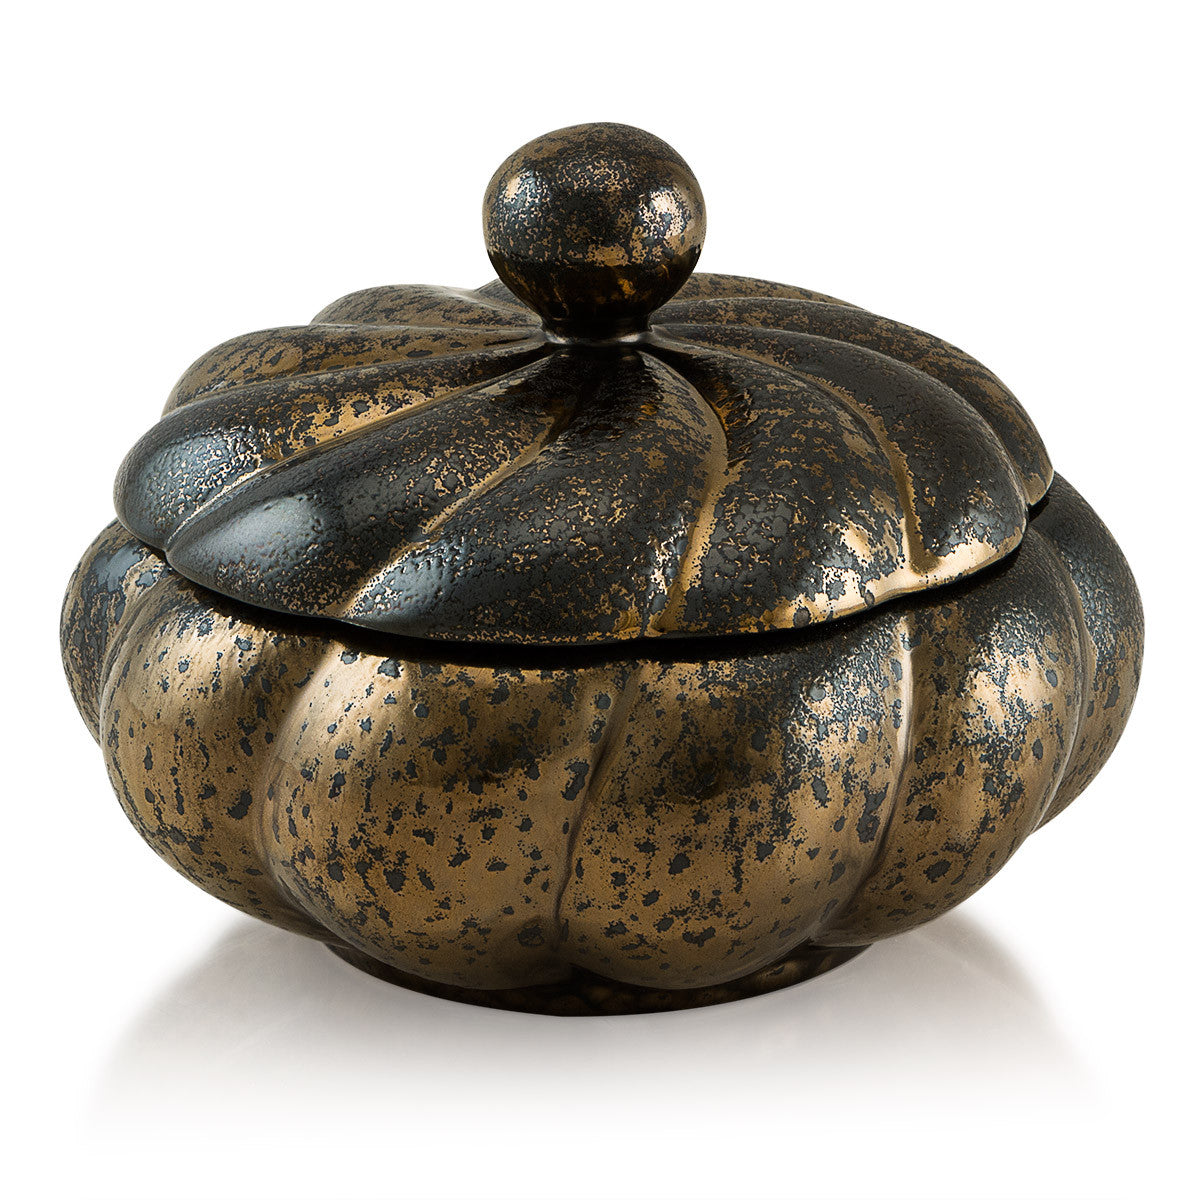 Ceramic twisted box in burnished bronze finish